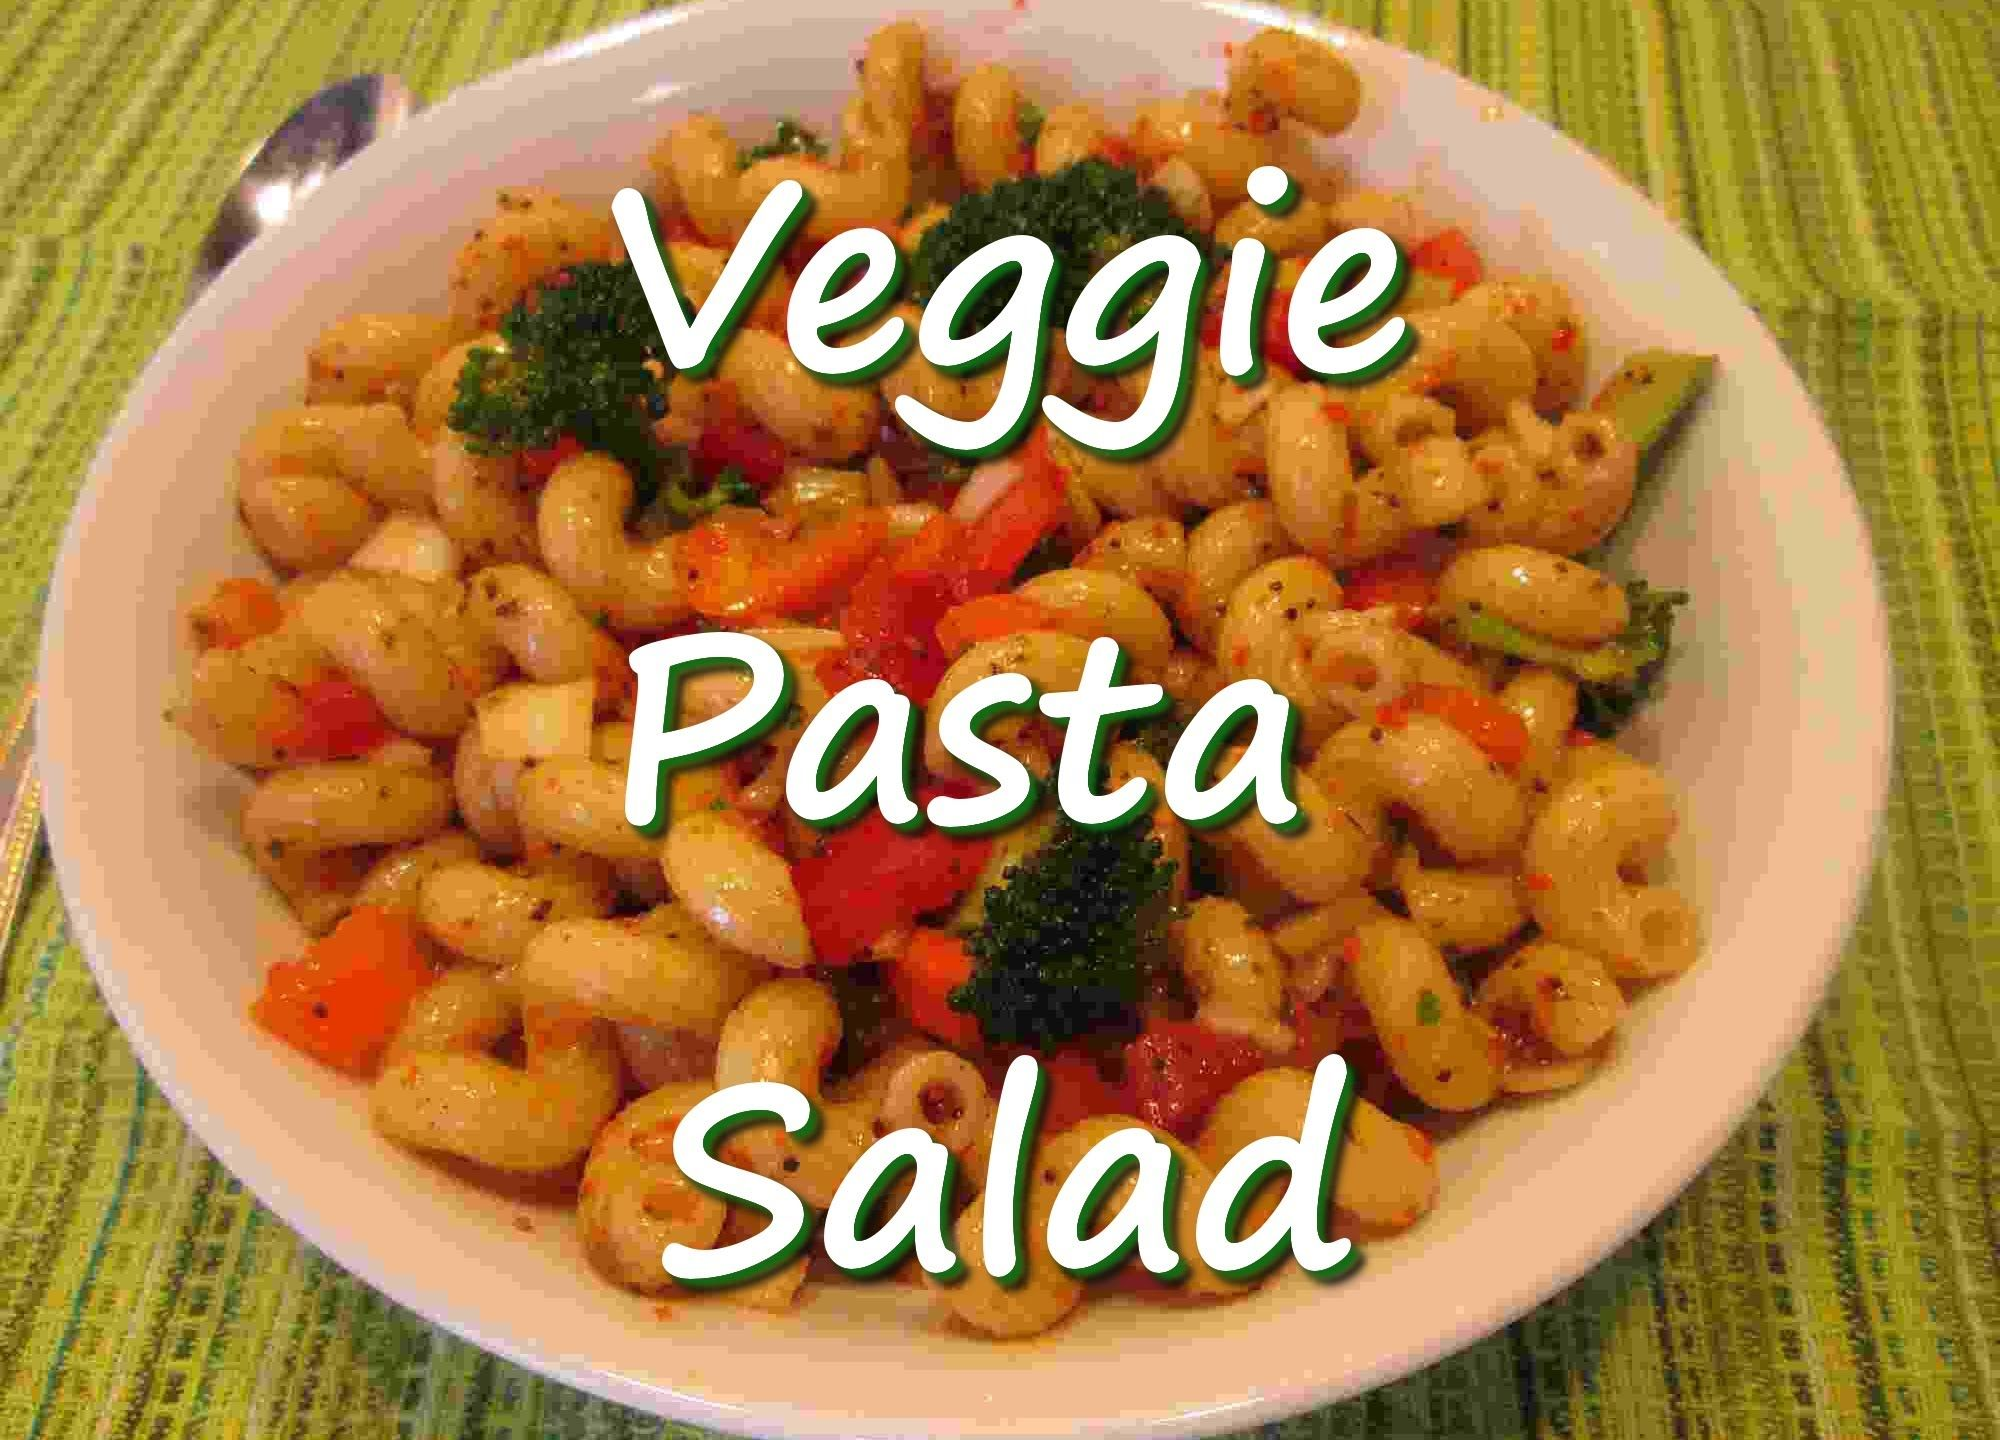 Easy vegetable pasta salad recipe veggie awesome tesss kitchen easy vegetable pasta salad recipe veggie awesome forumfinder Images